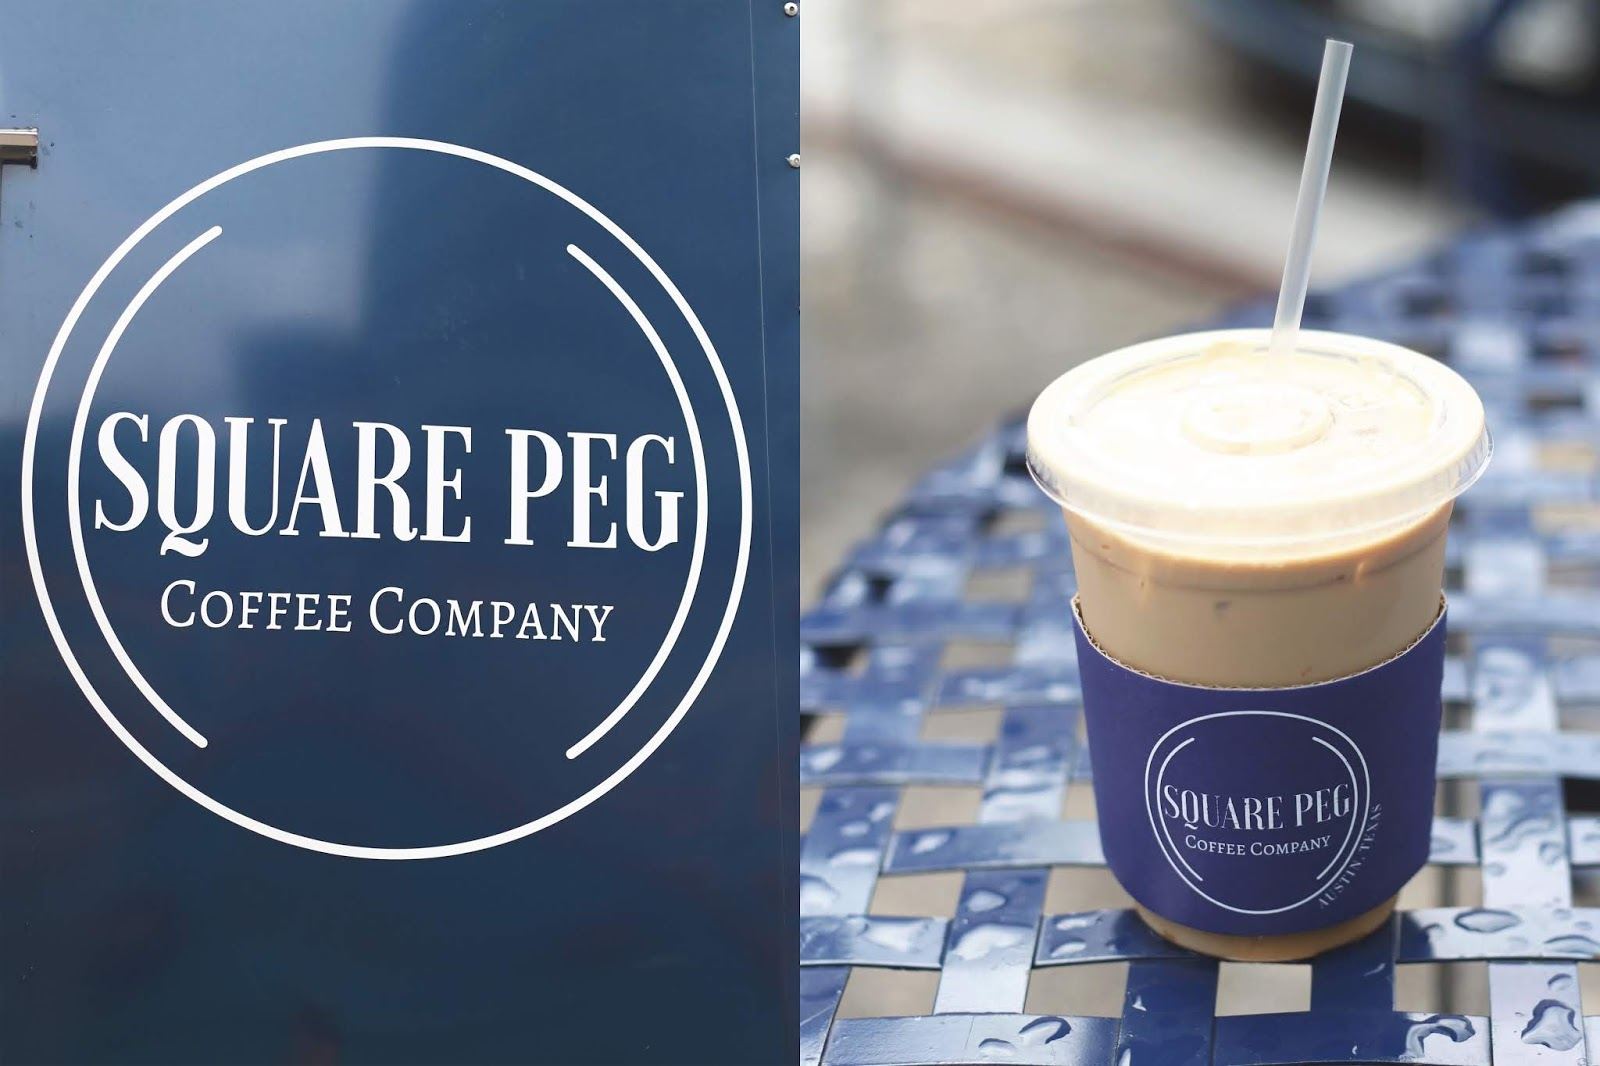 Square Peg Austin, Iced Coffee, Cozy Coffee Shop, Coffee Shops Vibe